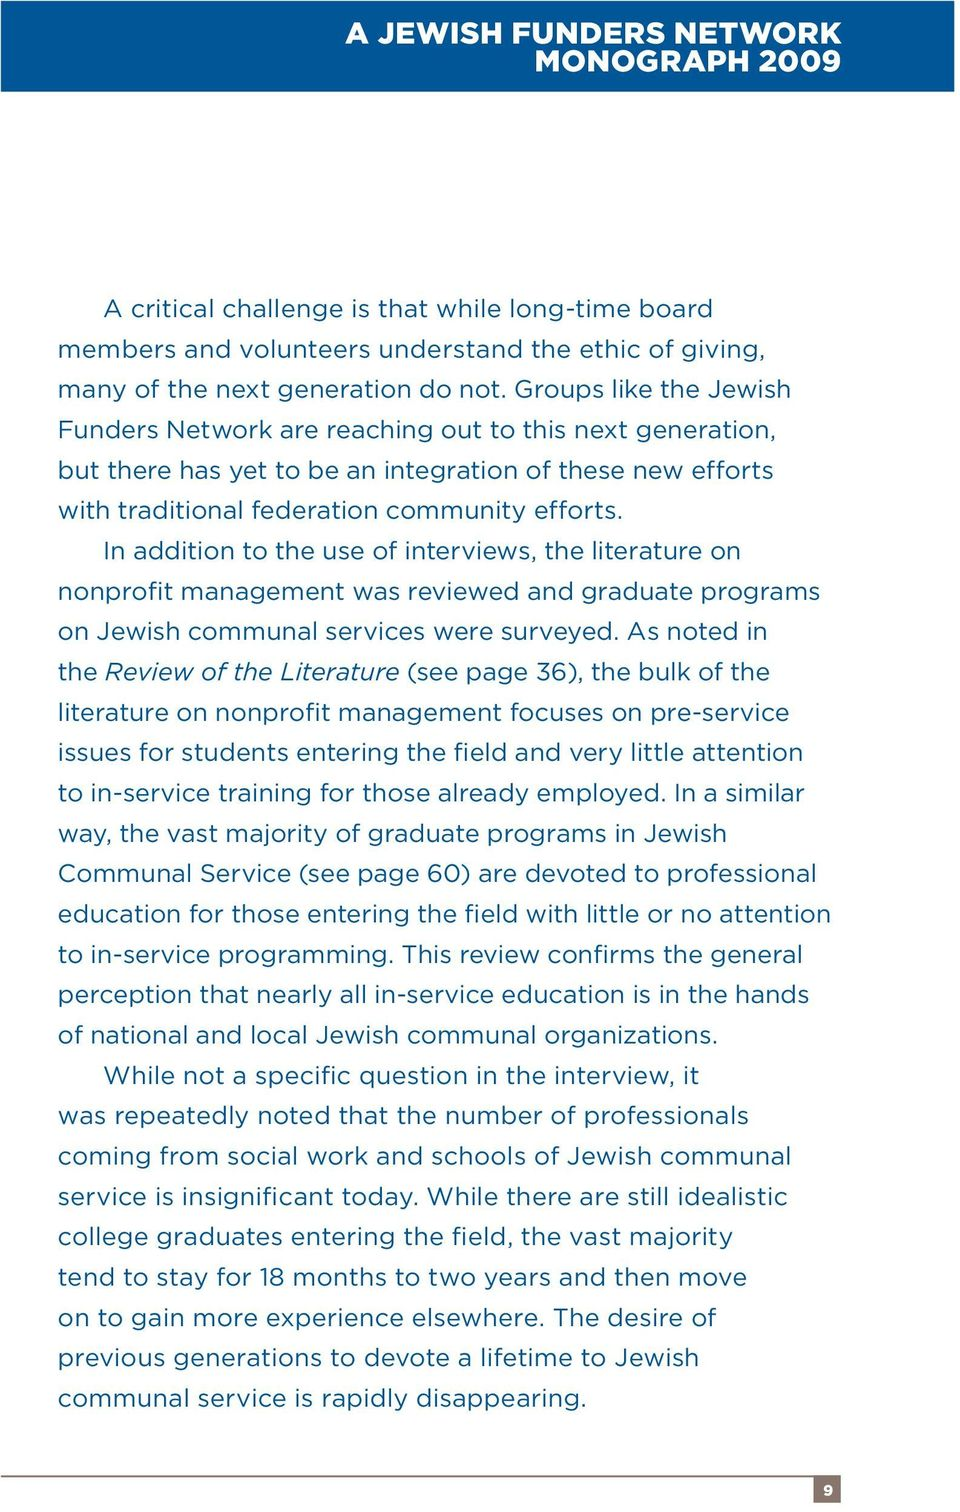 In addition to the use of interviews, the literature on nonprofit management was reviewed and graduate programs on Jewish communal services were surveyed.